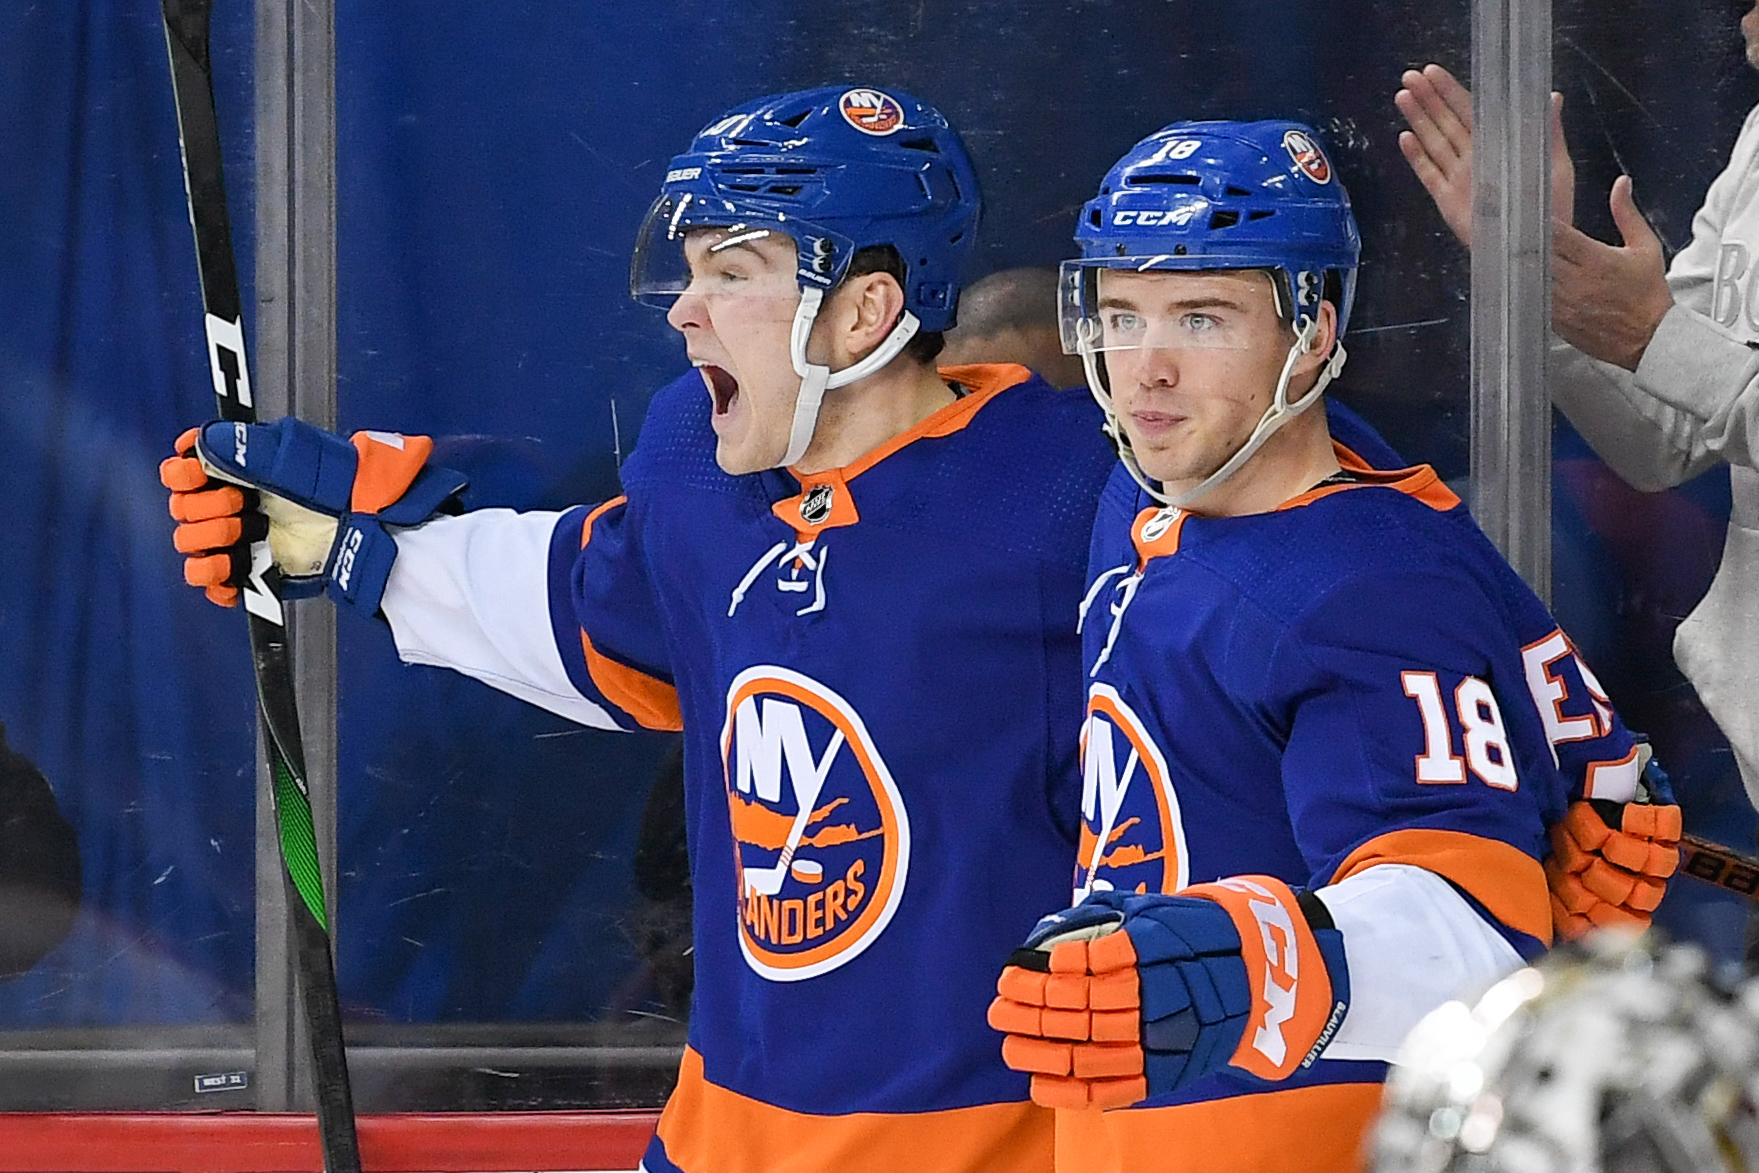 Feb 6, 2020; Brooklyn, New York, USA; New York Islanders left wing Kieffer Bellows (20) celebrates his first NHL goal with New York Islanders left wing Anthony Beauvillier (18) against the Los Angeles Kings during the second period at Barclays Center. Mandatory Credit: Dennis Schneidler-USA TODAY Sports